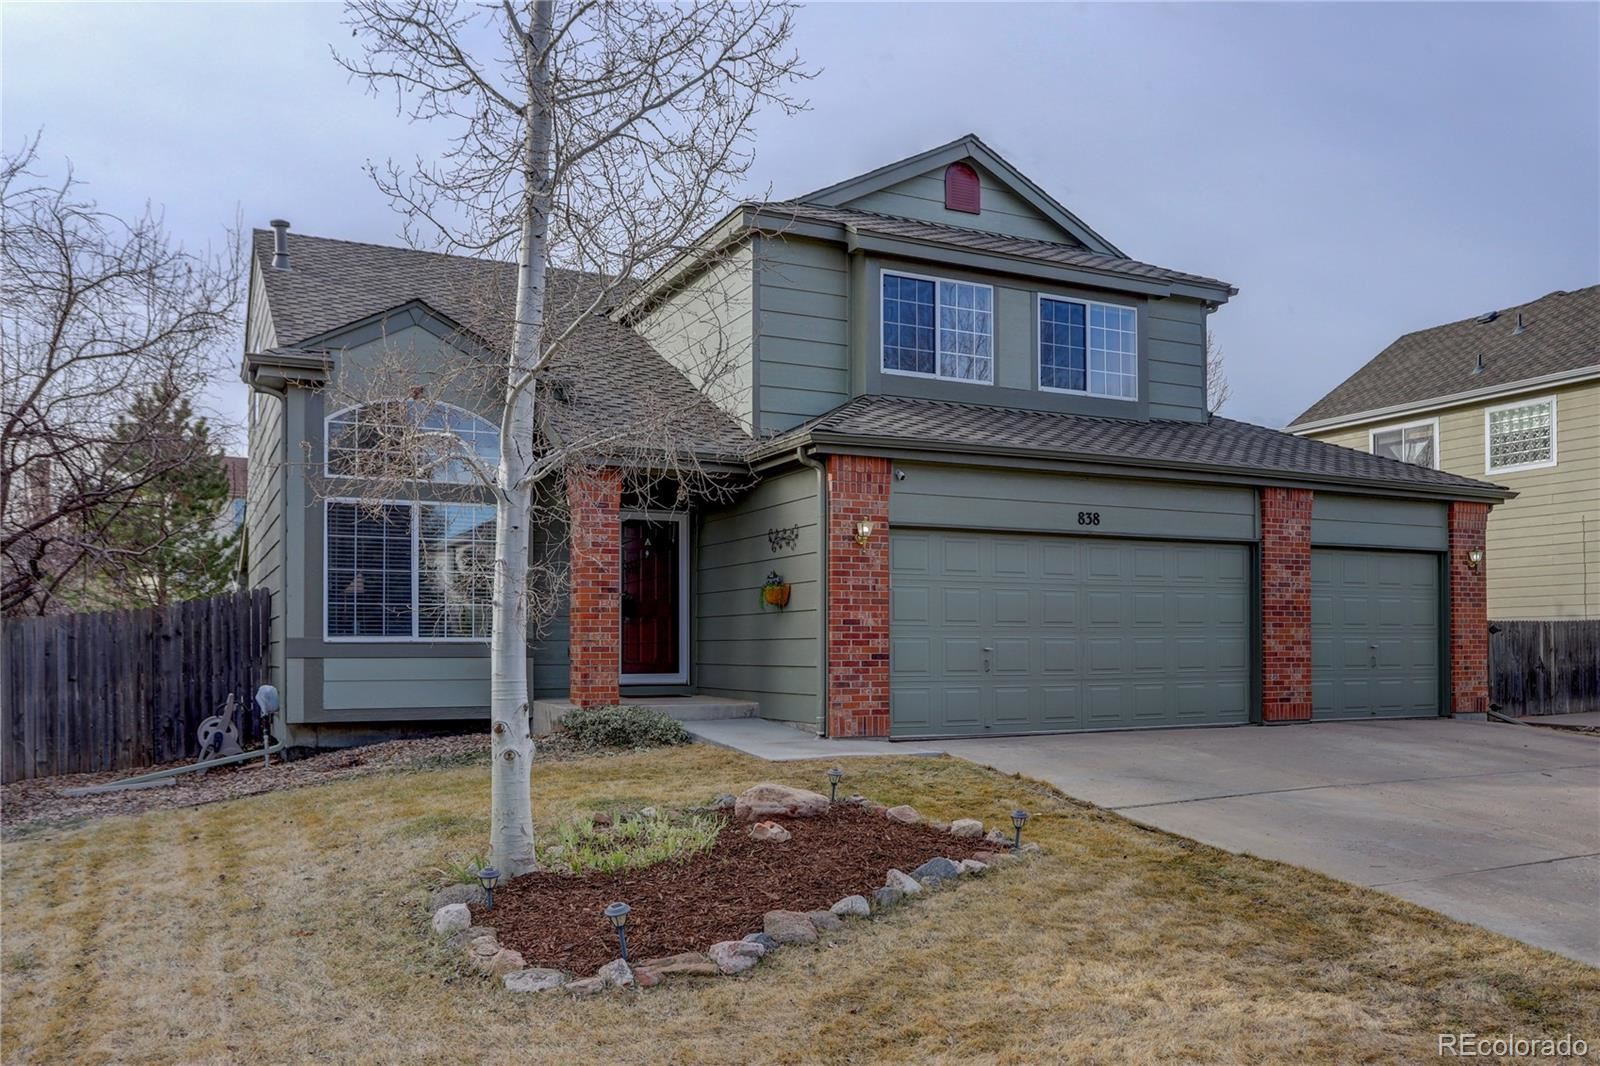 838 E 133rd Avenue, Thornton, CO 80241 - #: 6662325